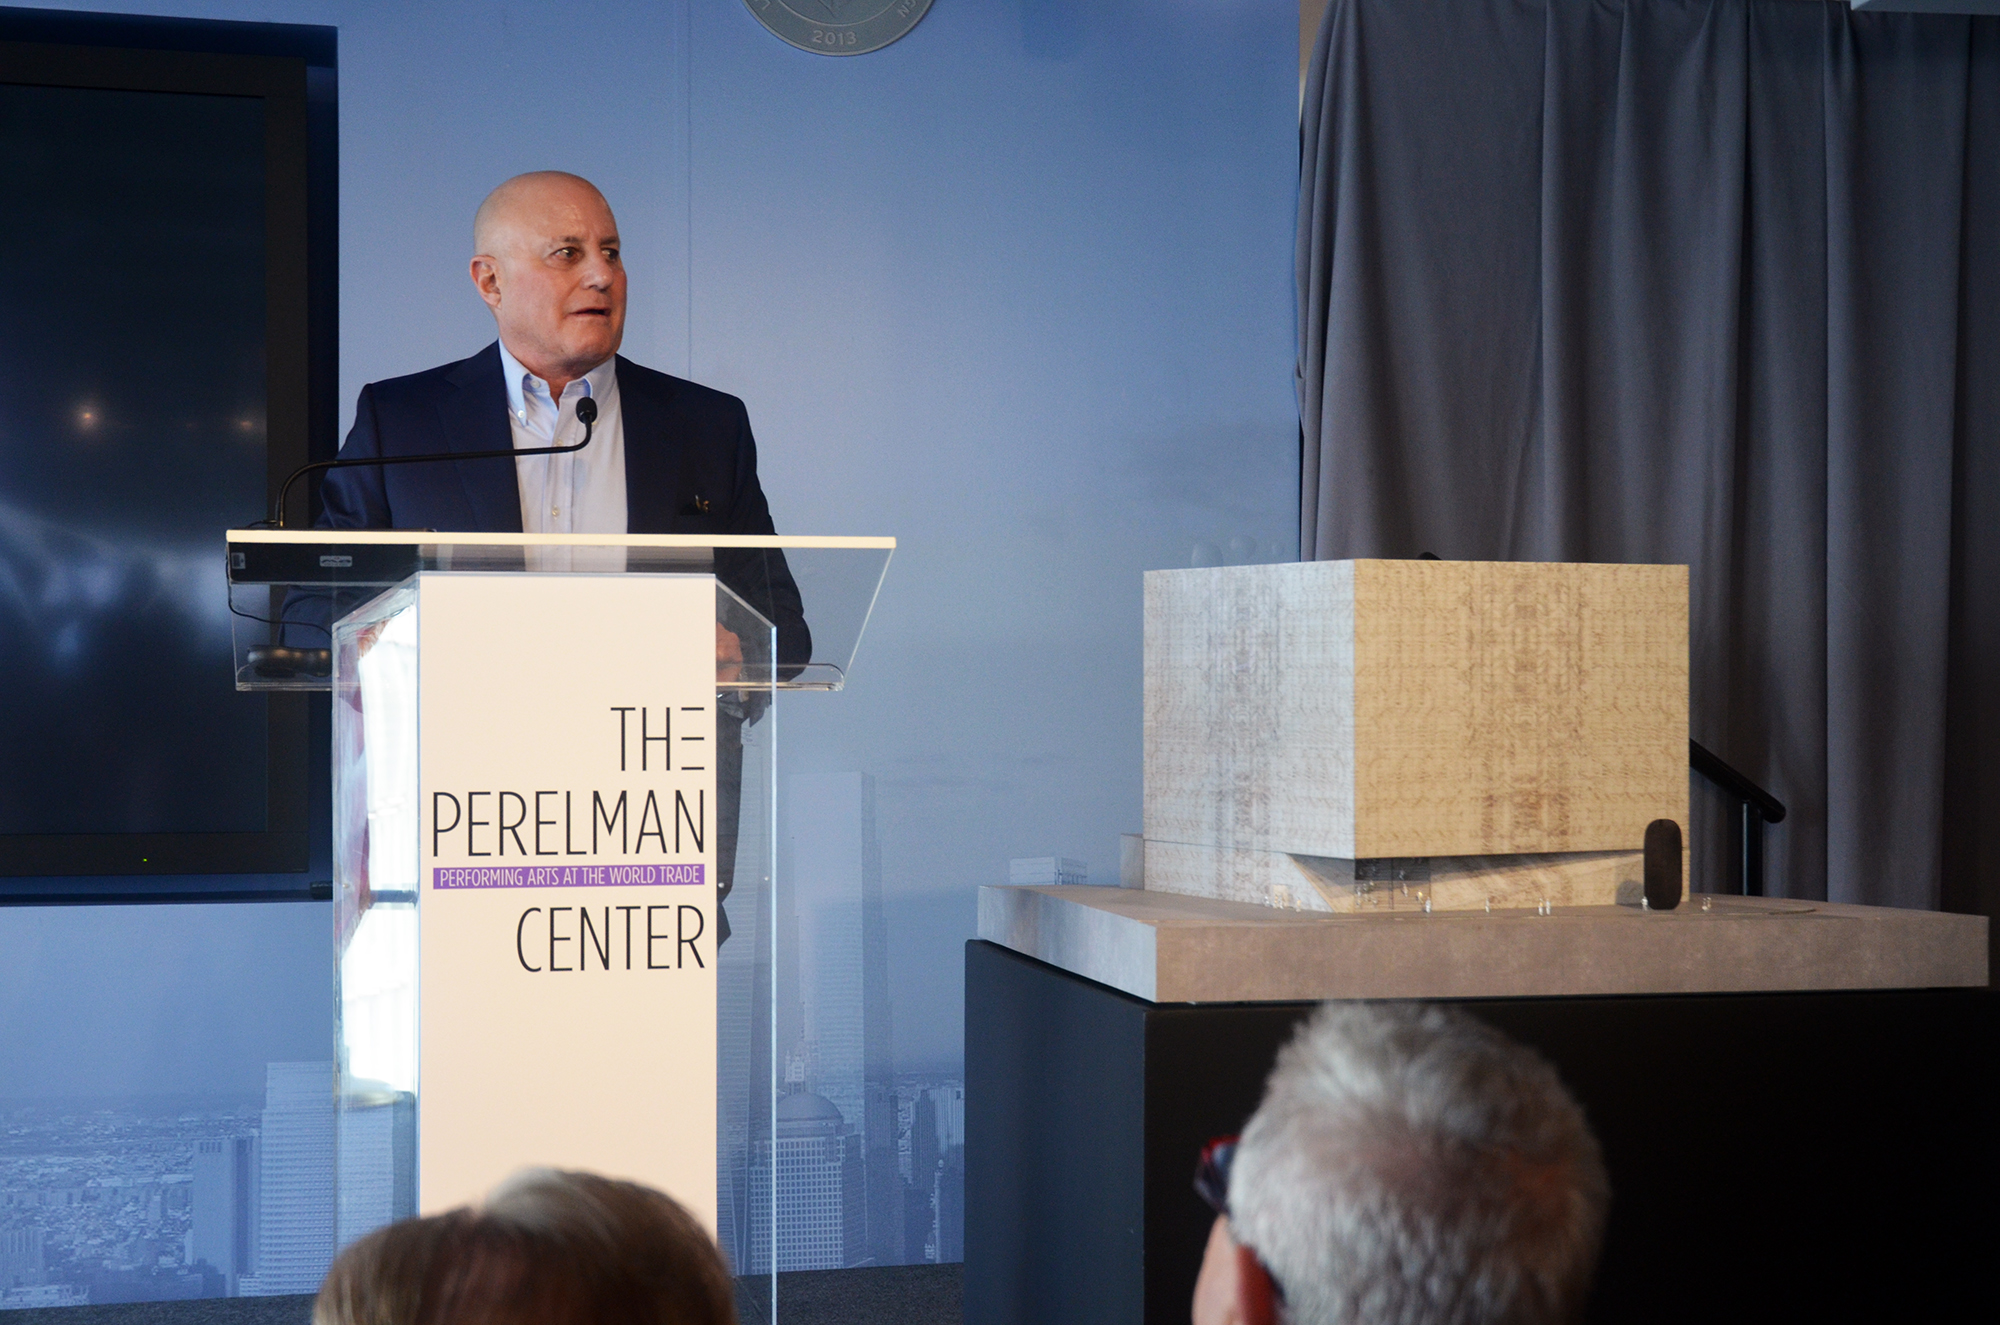 Ronald O. Perelman at the design unveiling for the Ronald O. Perelman Performing Arts Center at the World Trade Center. Photo by Evan Bindelglass